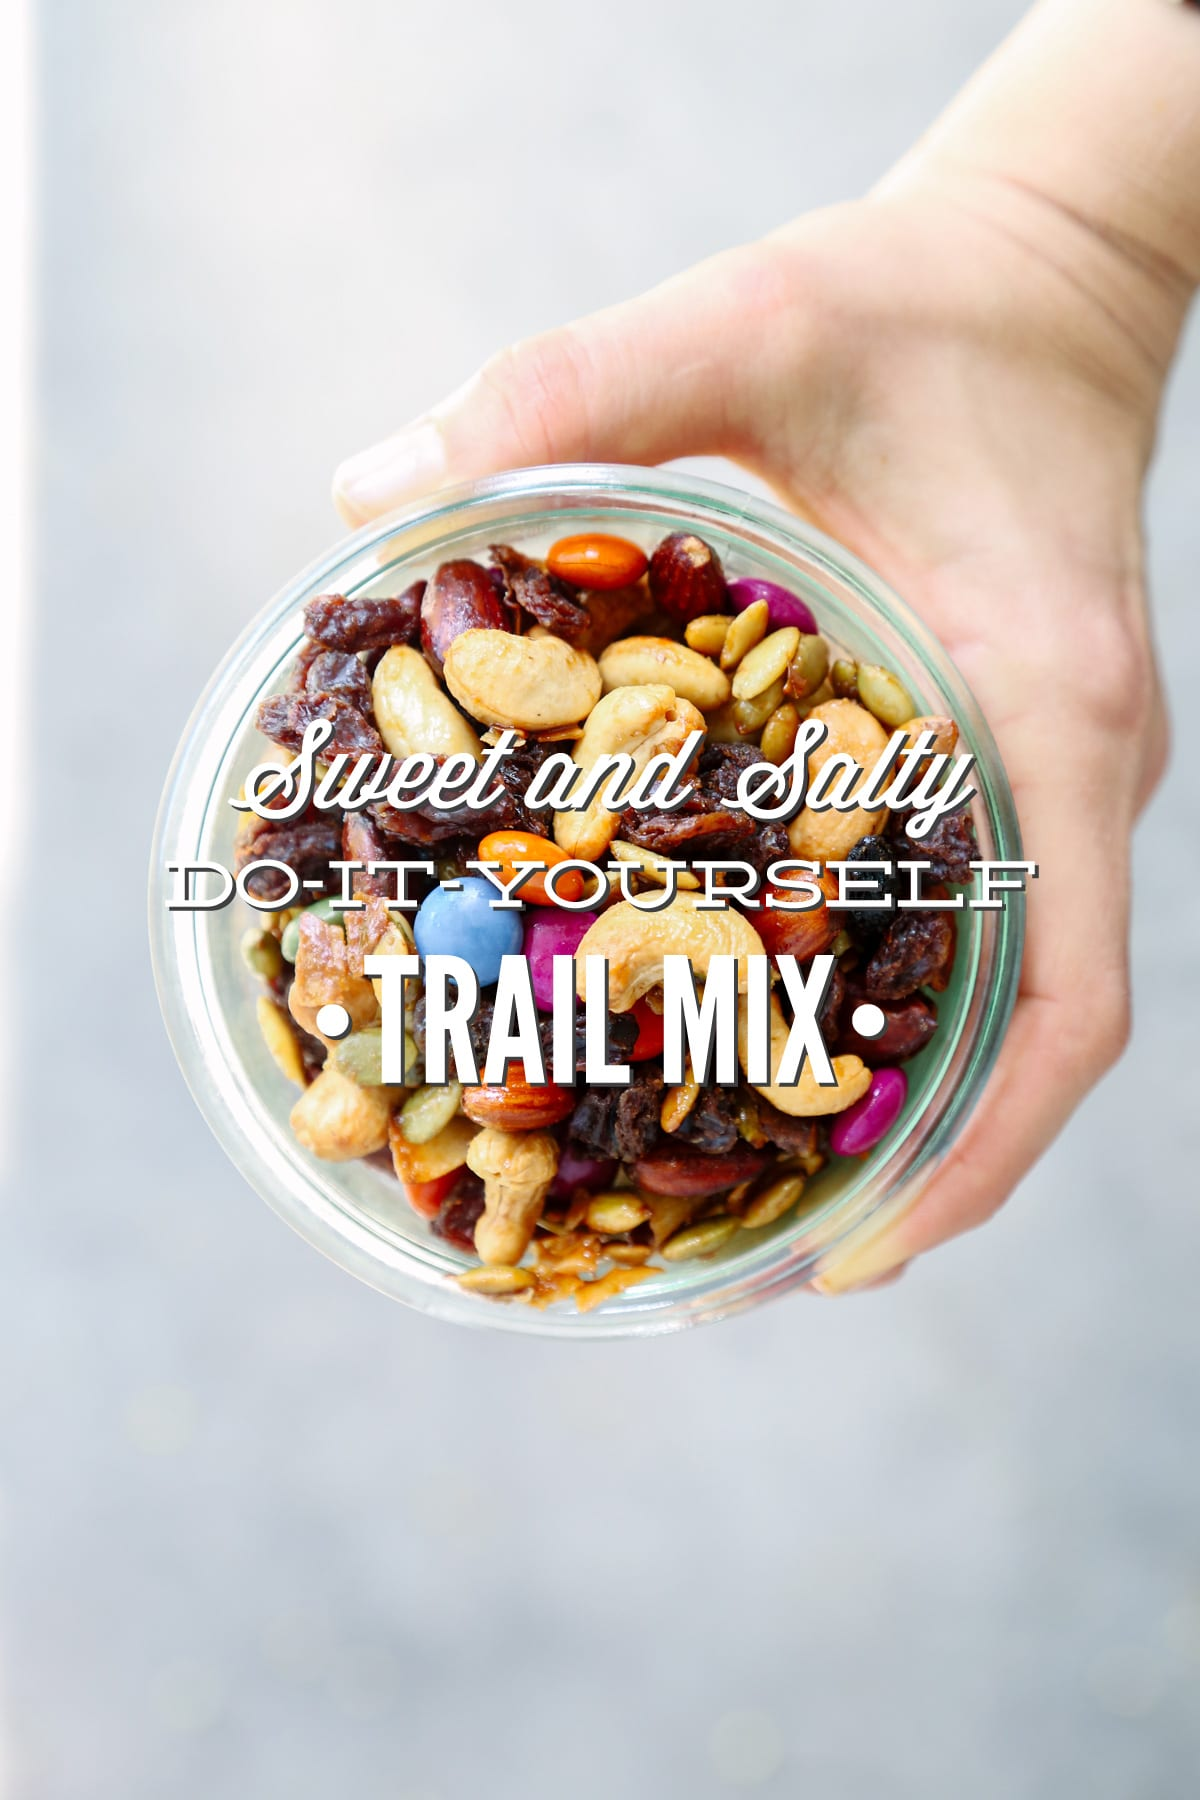 Sweet and Salty Do-It-Yourself Trail Mix